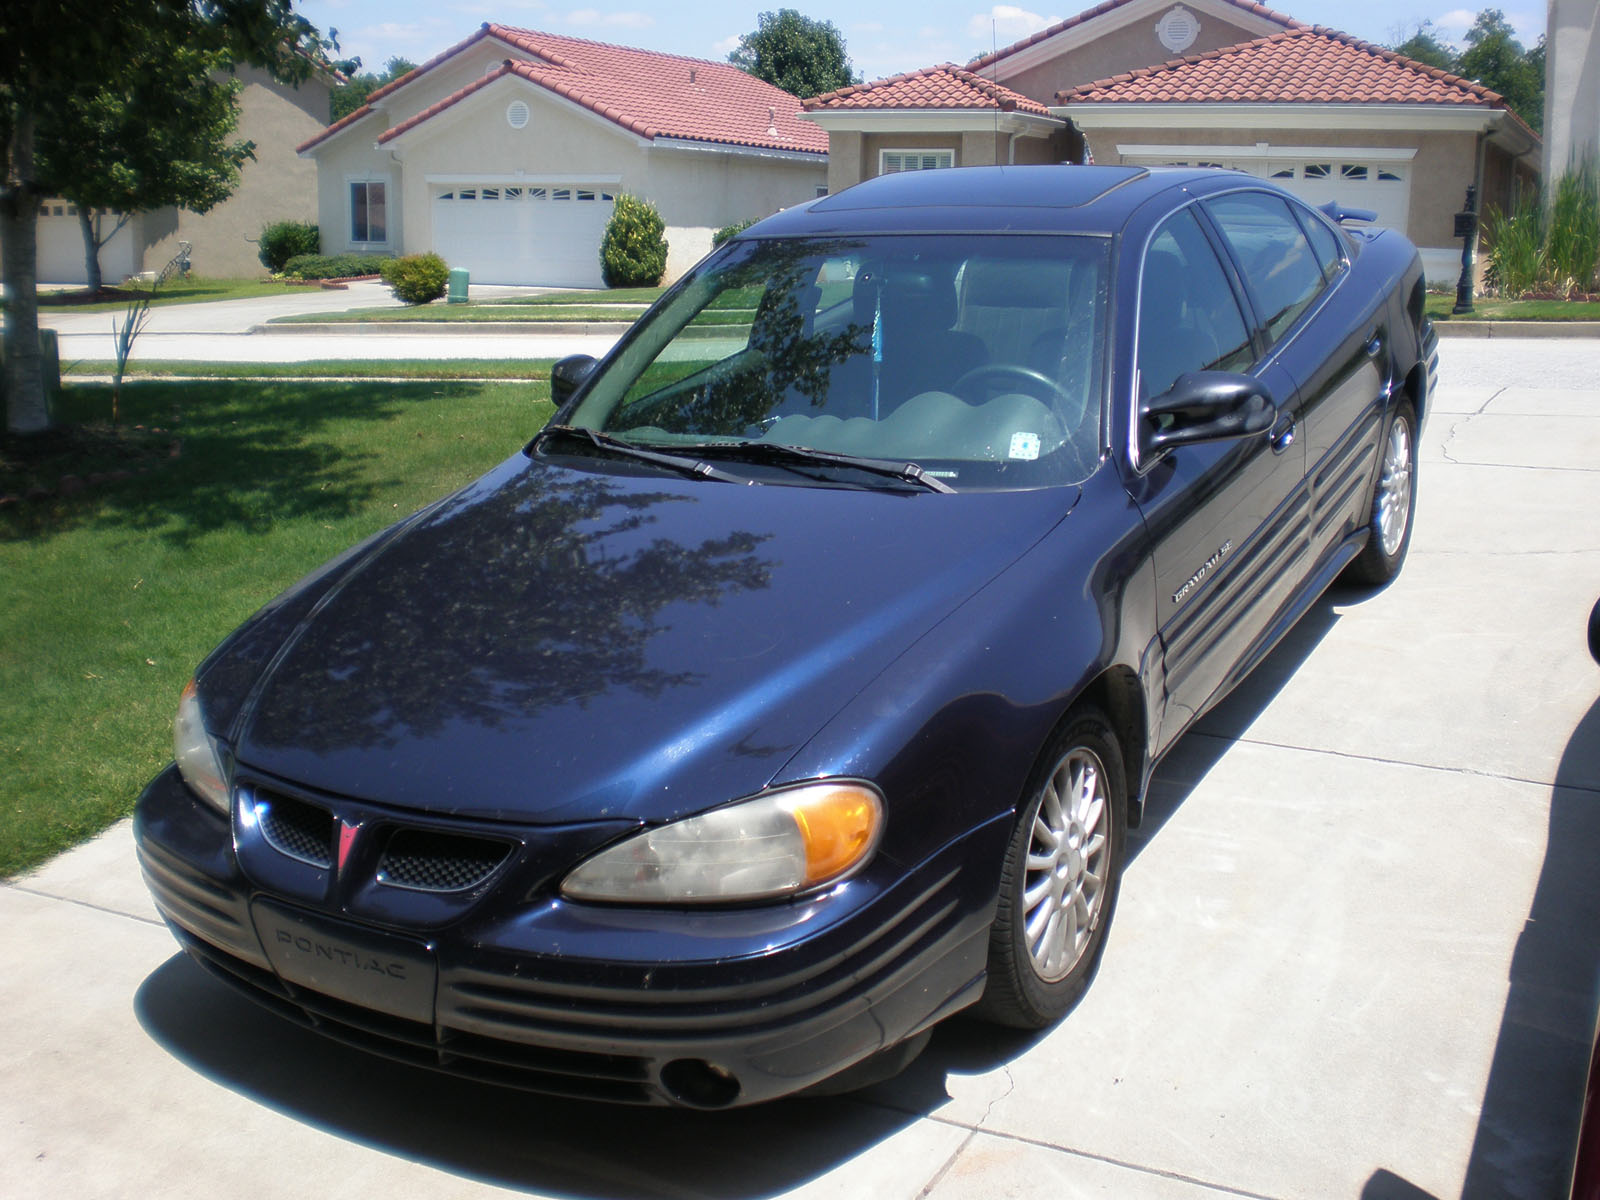 2001 pontiac grand am manual